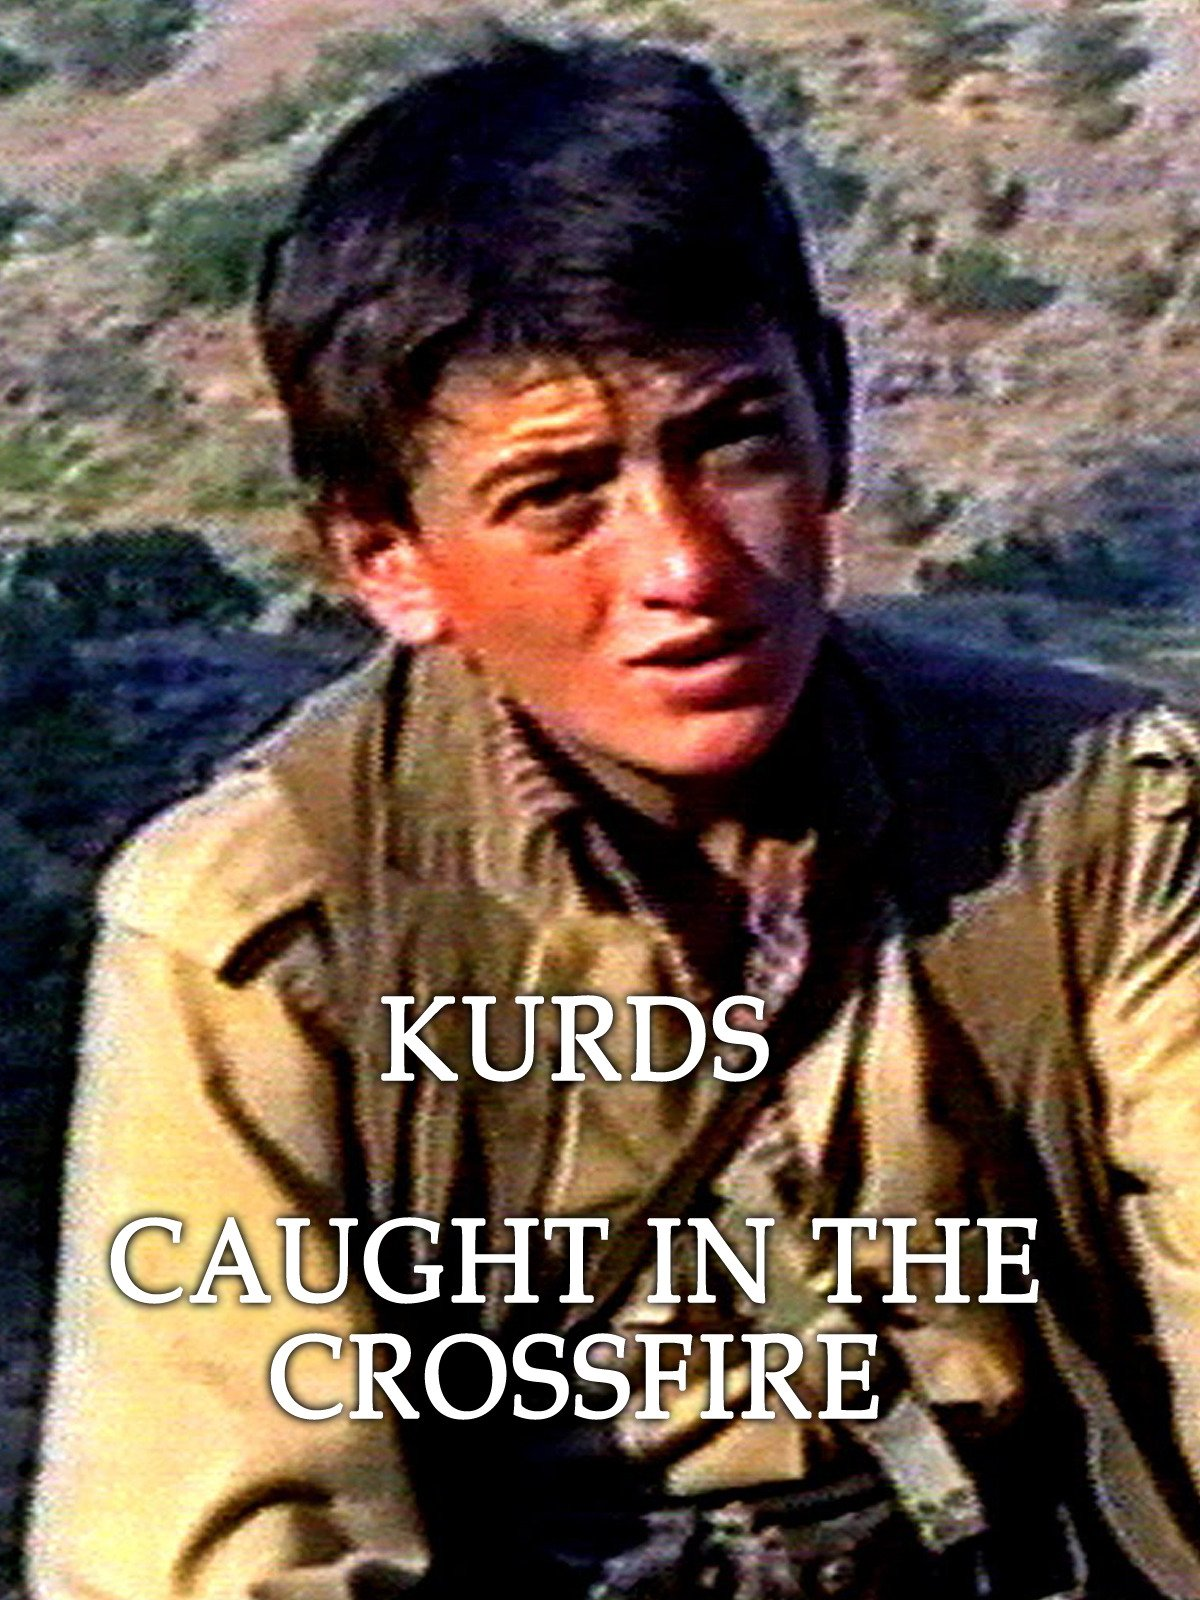 Kurds - Caught in the Crossfire on Amazon Prime Video UK